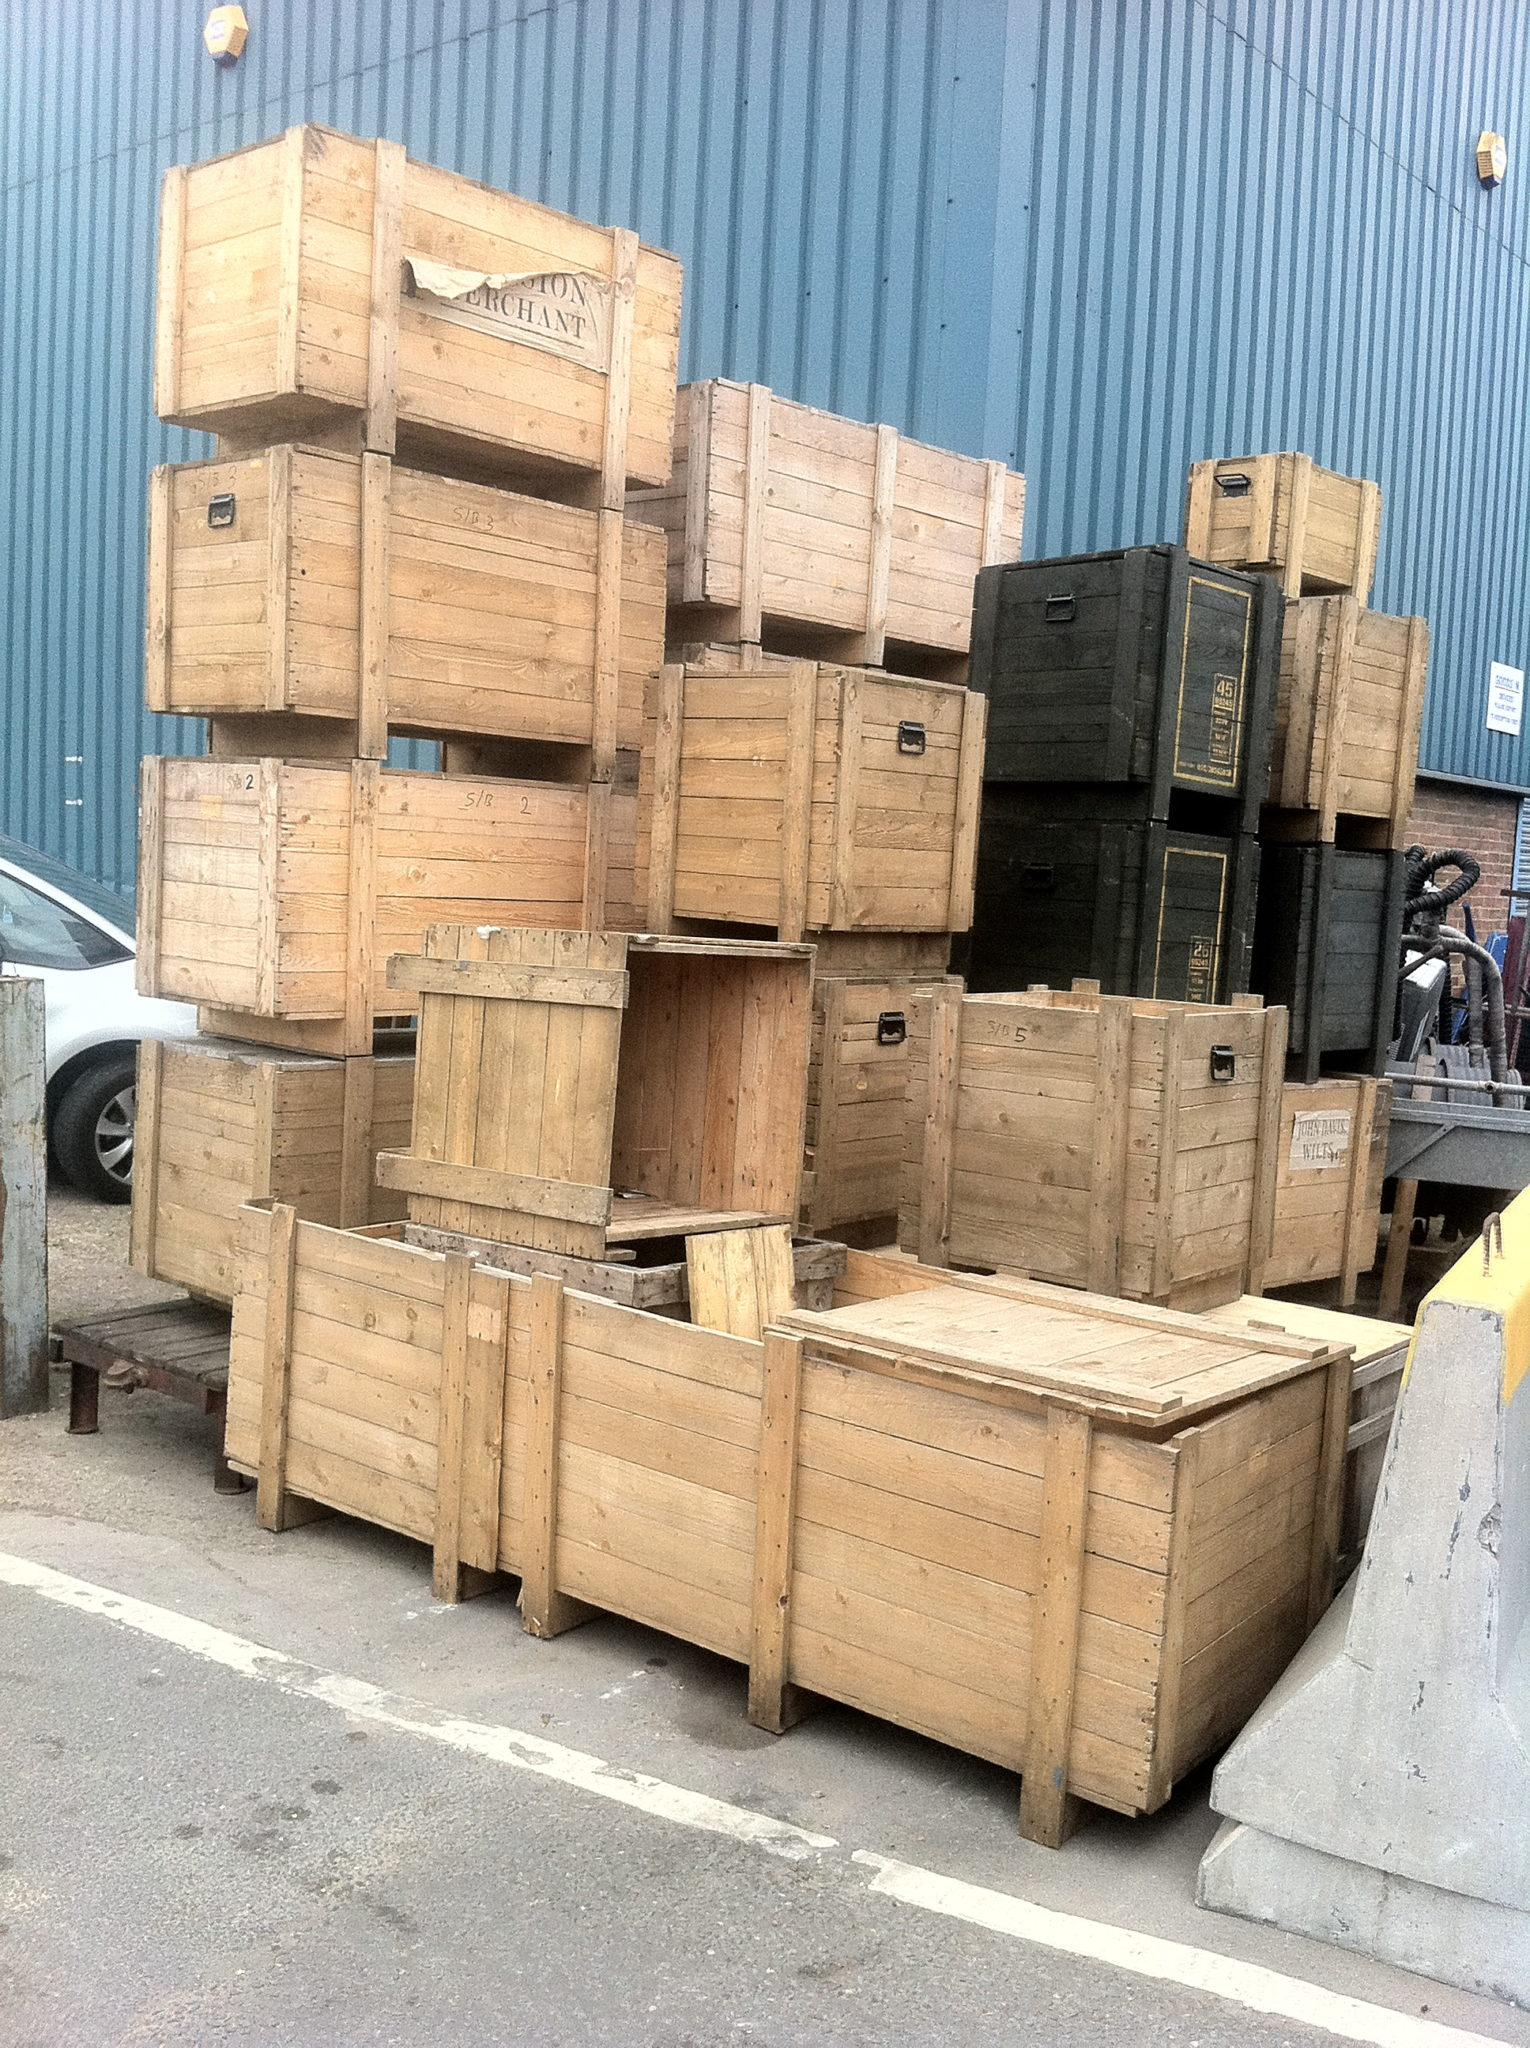 Packing Crates - Wooden Packing Crates